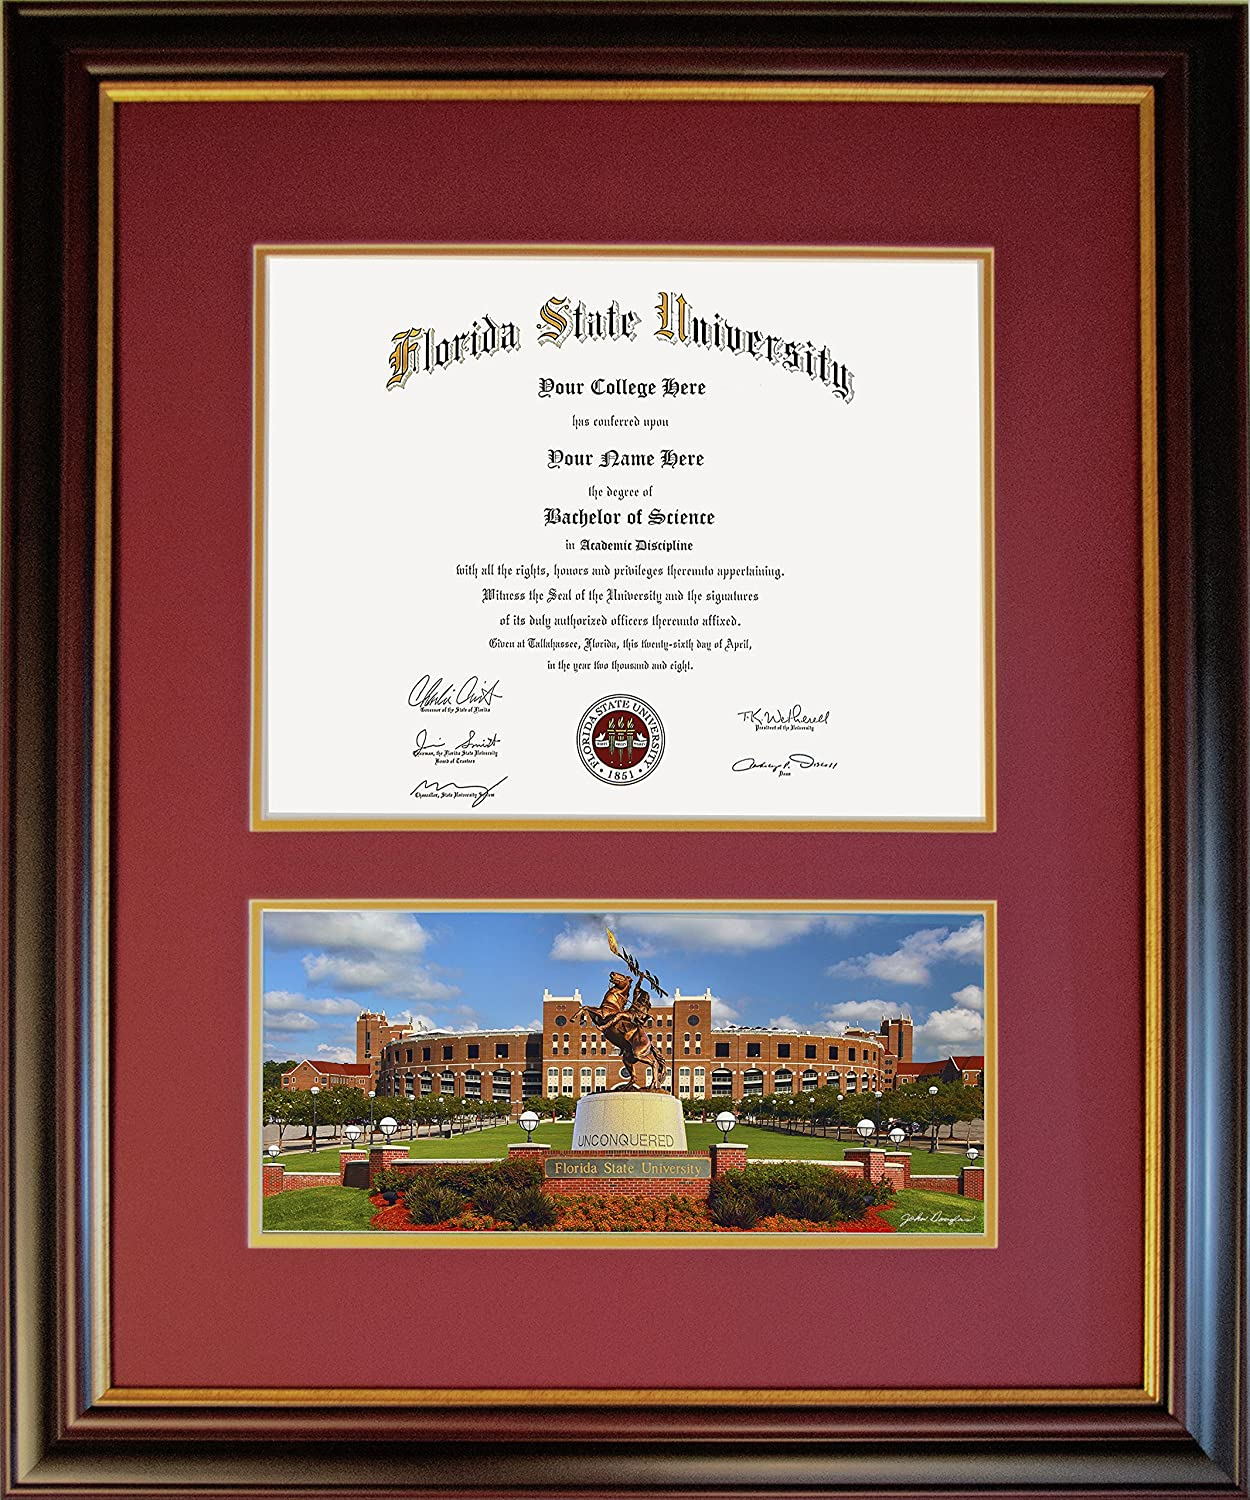 PicturesPlus-Art Diploma Frame for Florida State University - Unconquered